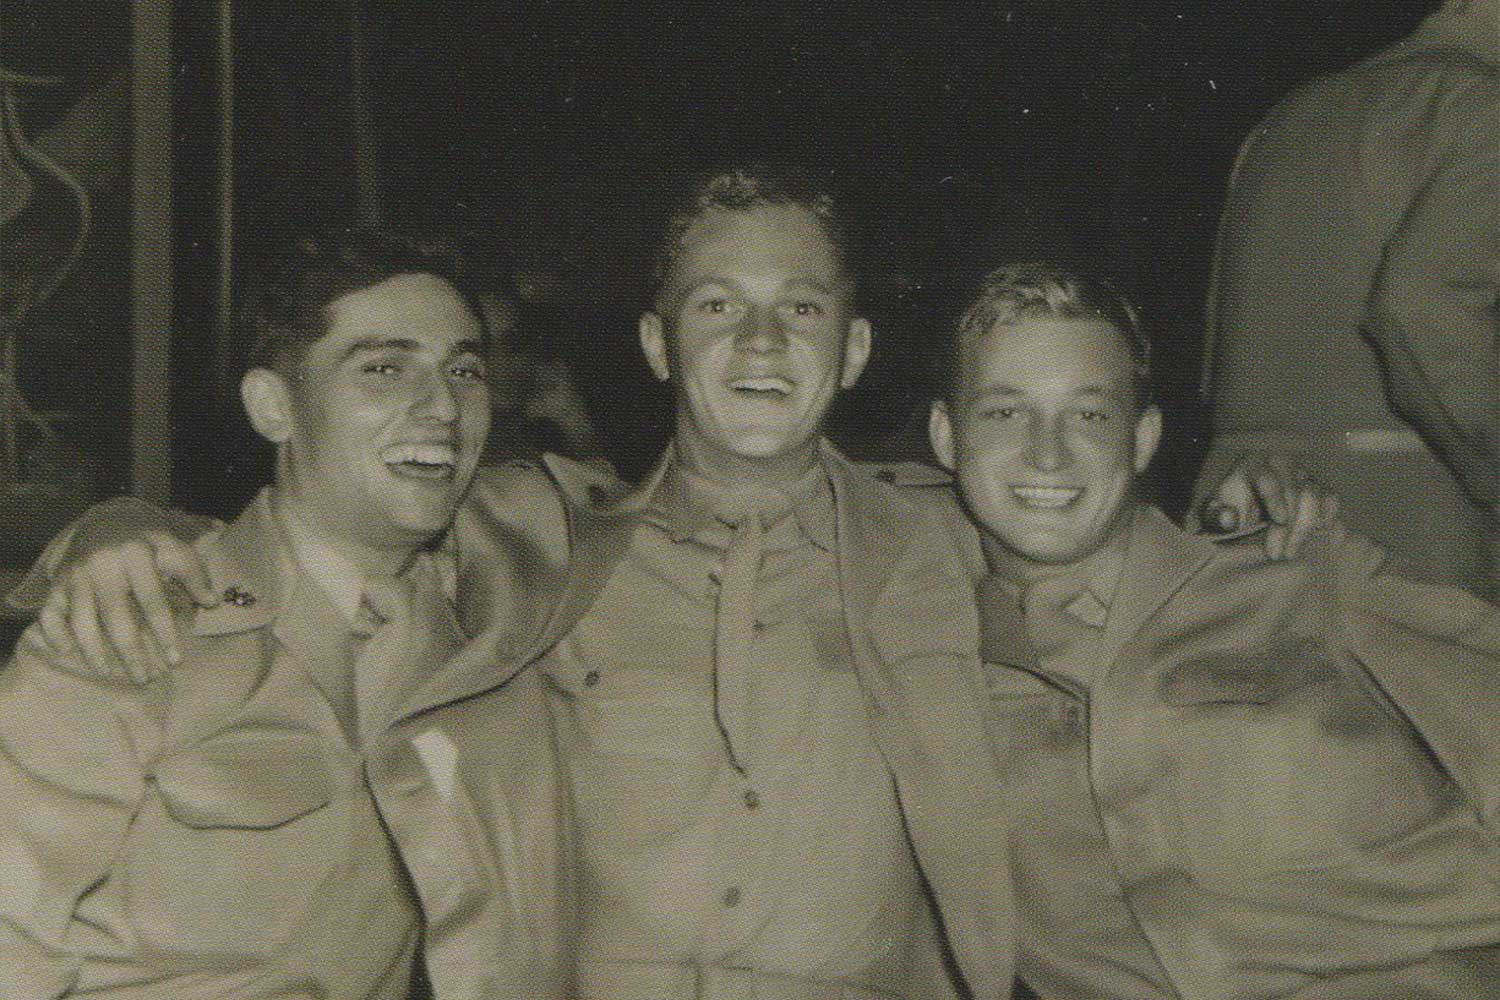 """Steve McQueen [center] shares a laugh with a pair of Marine buddies named Joe and Don upon his July 1947 platoon graduation at Parris Island, South Carolina. McQueen served a three-year stint and often told reporters he was busted down to private seven times to enhance his rebel status. However, his military file proved he was a competent soldier — McQueen ascended in rank rather quickly despite not serving in the Marines during wartime. (Image Credit: Bonham's Auctioneers / Courtesy of Marshall Terrill / appears in """"Steve McQueen: The Life and Legend of a Hollywood Icon"""" [2010] / medium.com)"""